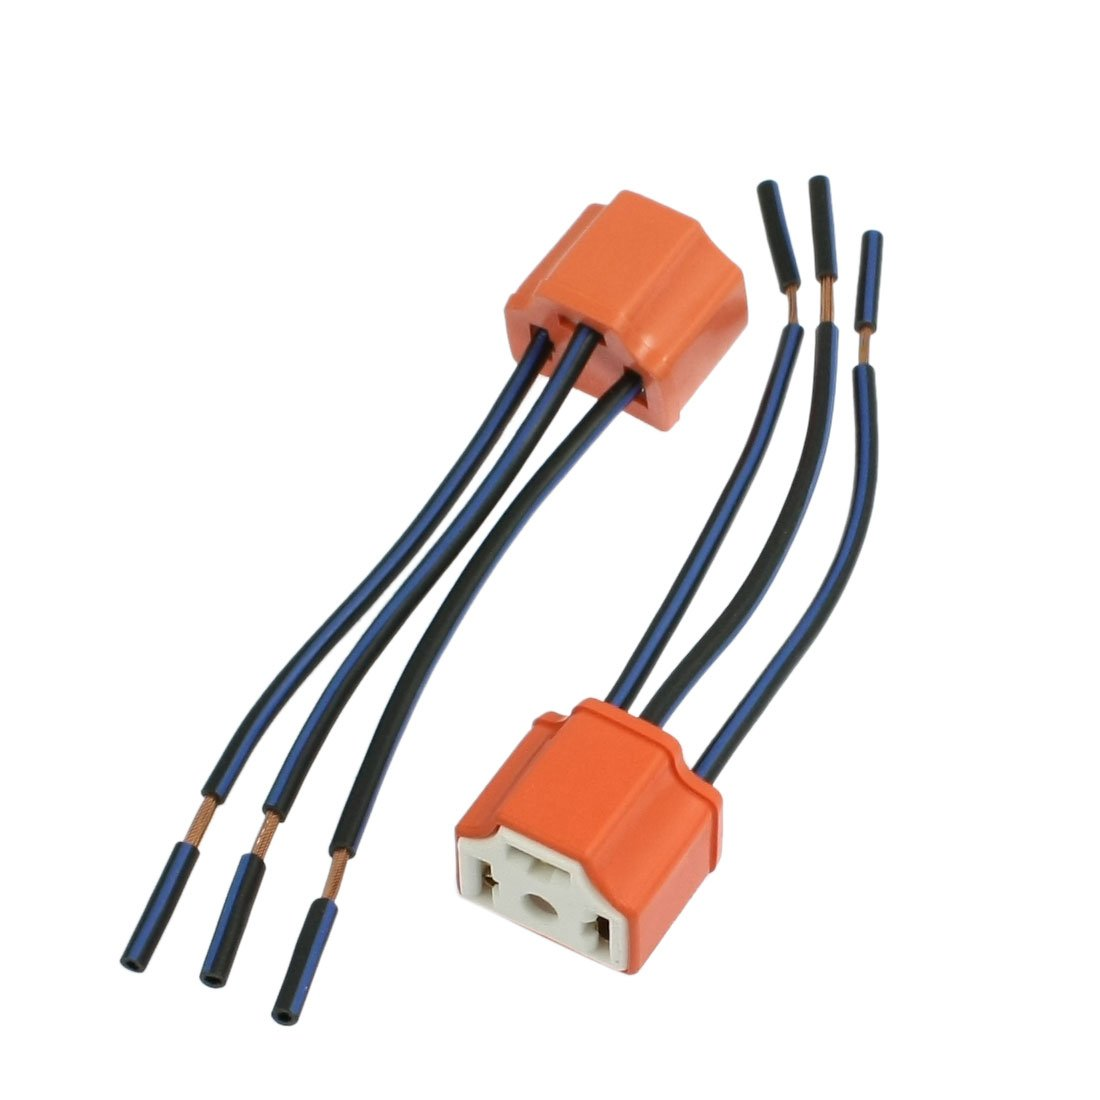 61PoVbaSyvL._SL1100_ amazon com uxcell 2 x h4 9003 ceramic wire wiring harness sockets Automotive Wire Connectors at crackthecode.co